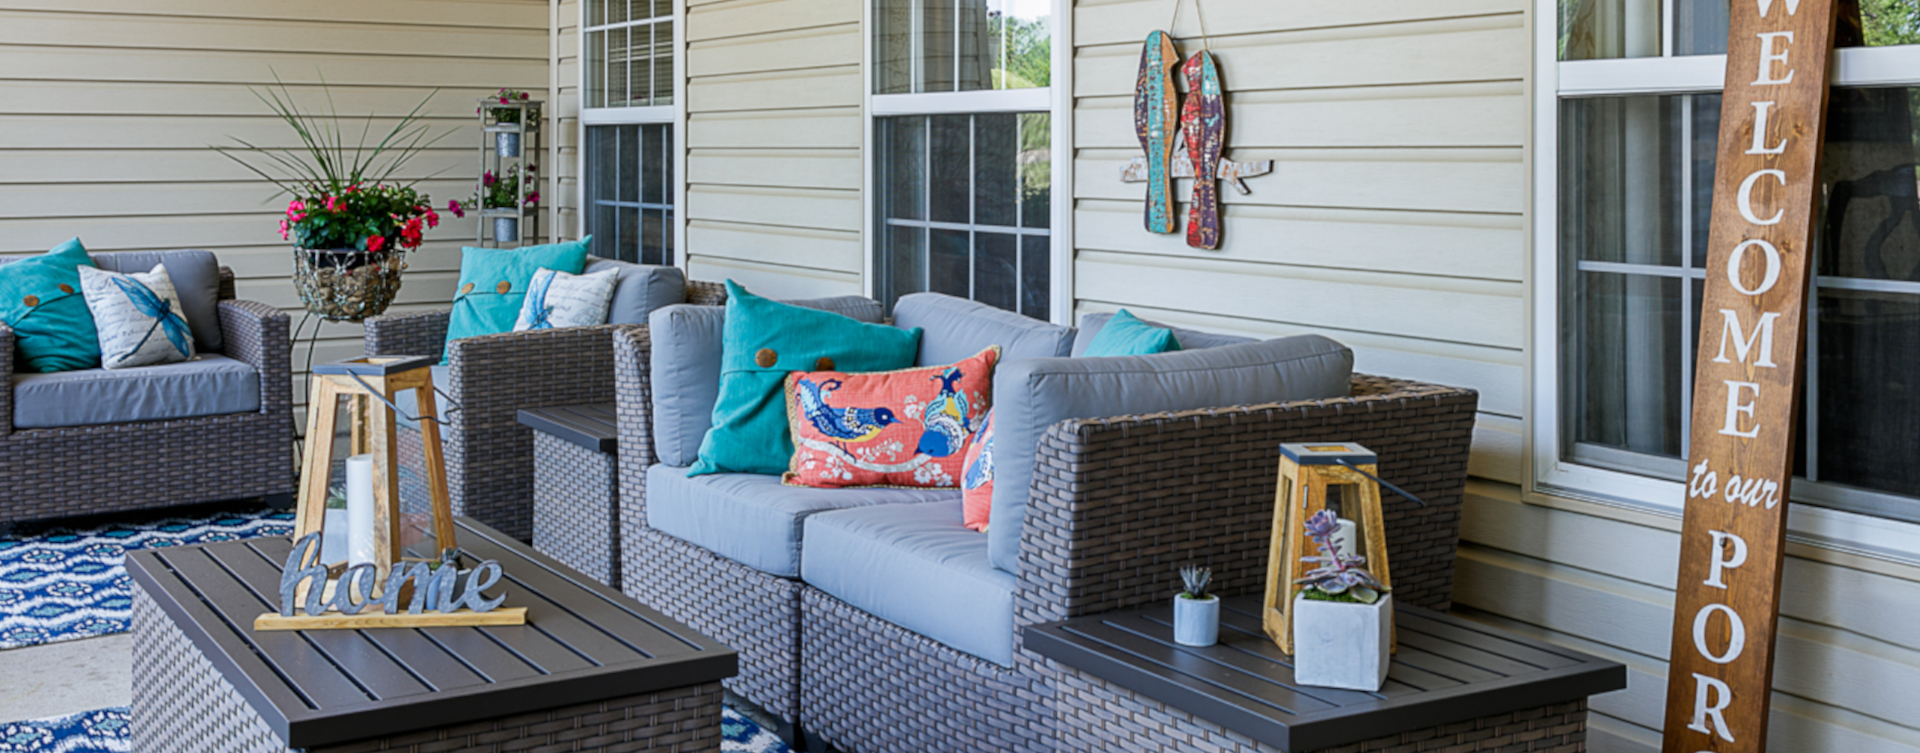 Relax in your favorite chair on the porch at Bickford of Sioux City